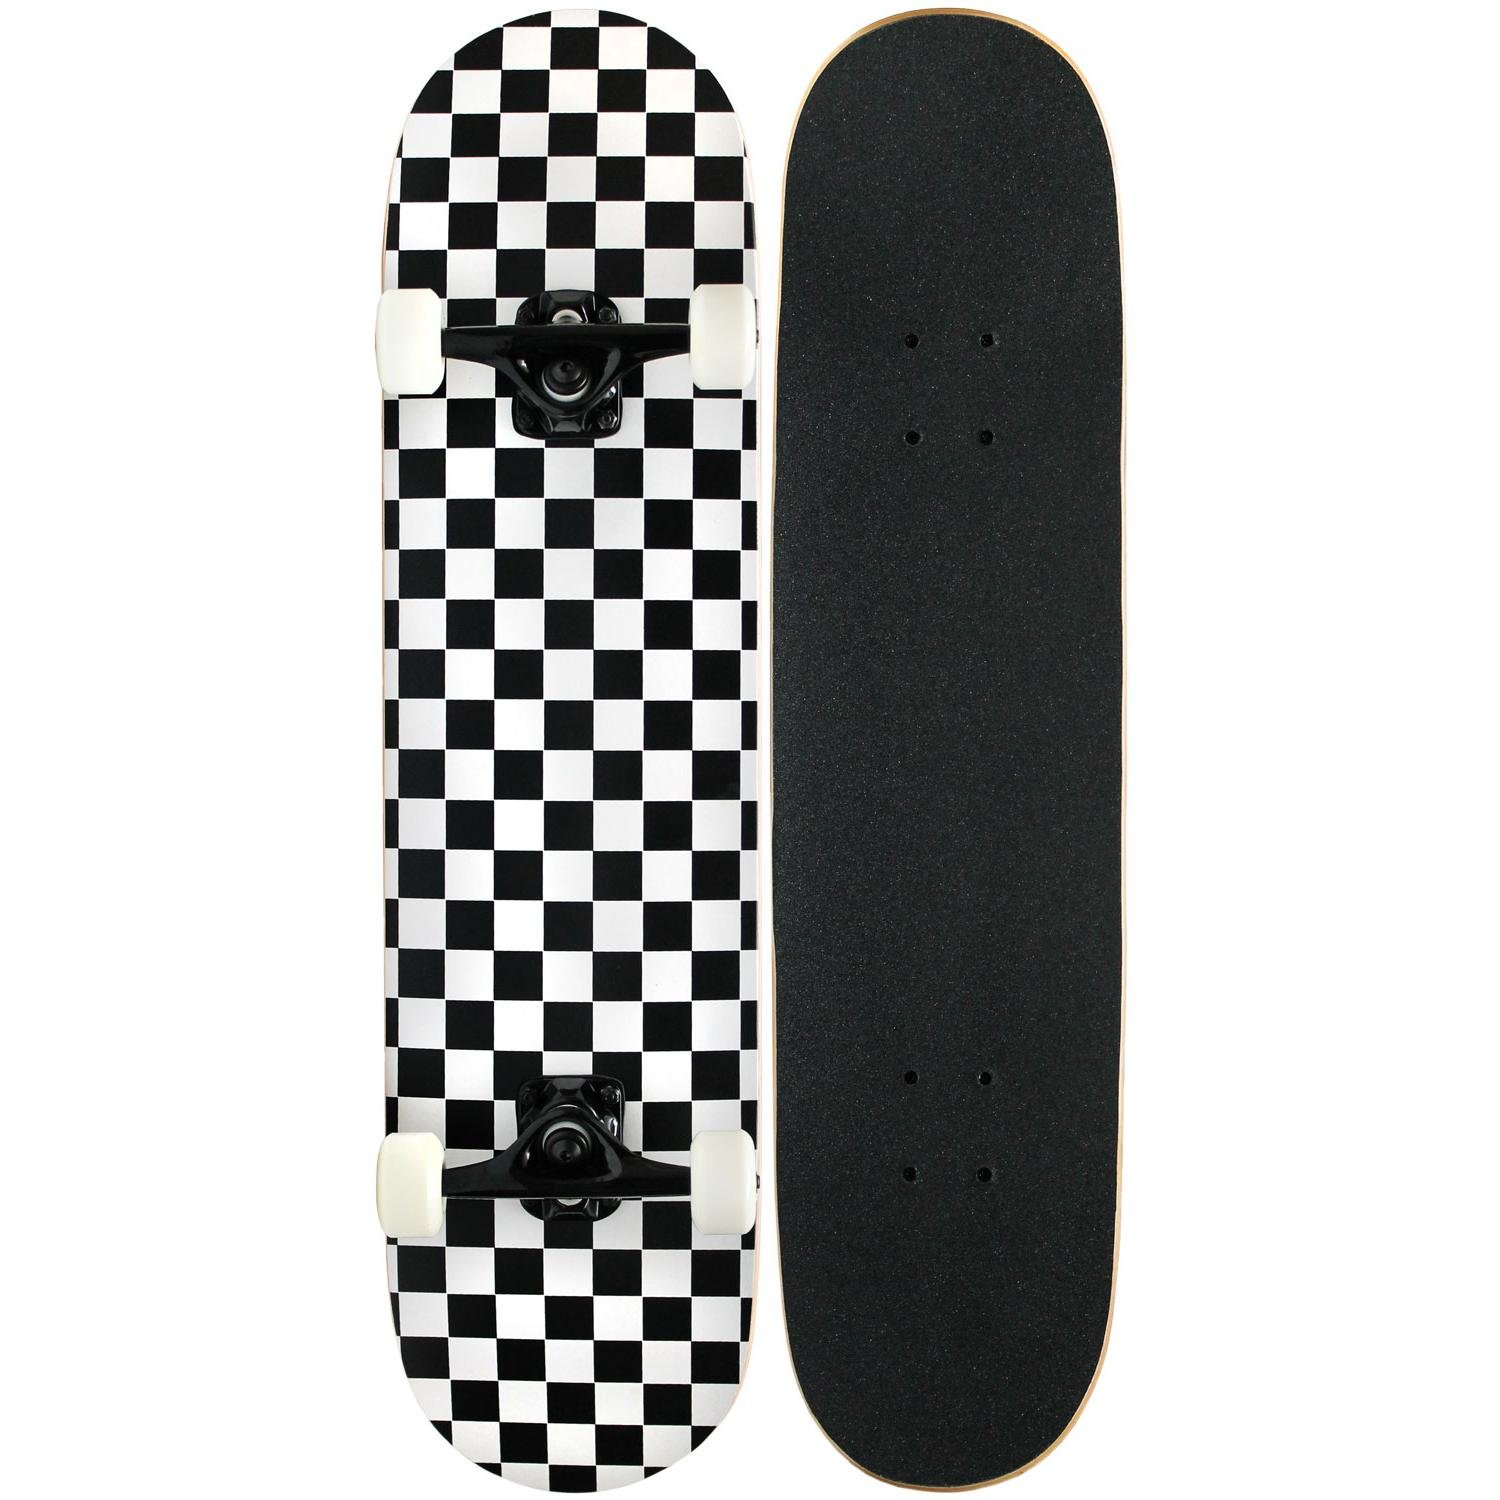 KPC Skateboard Complete Black Checker